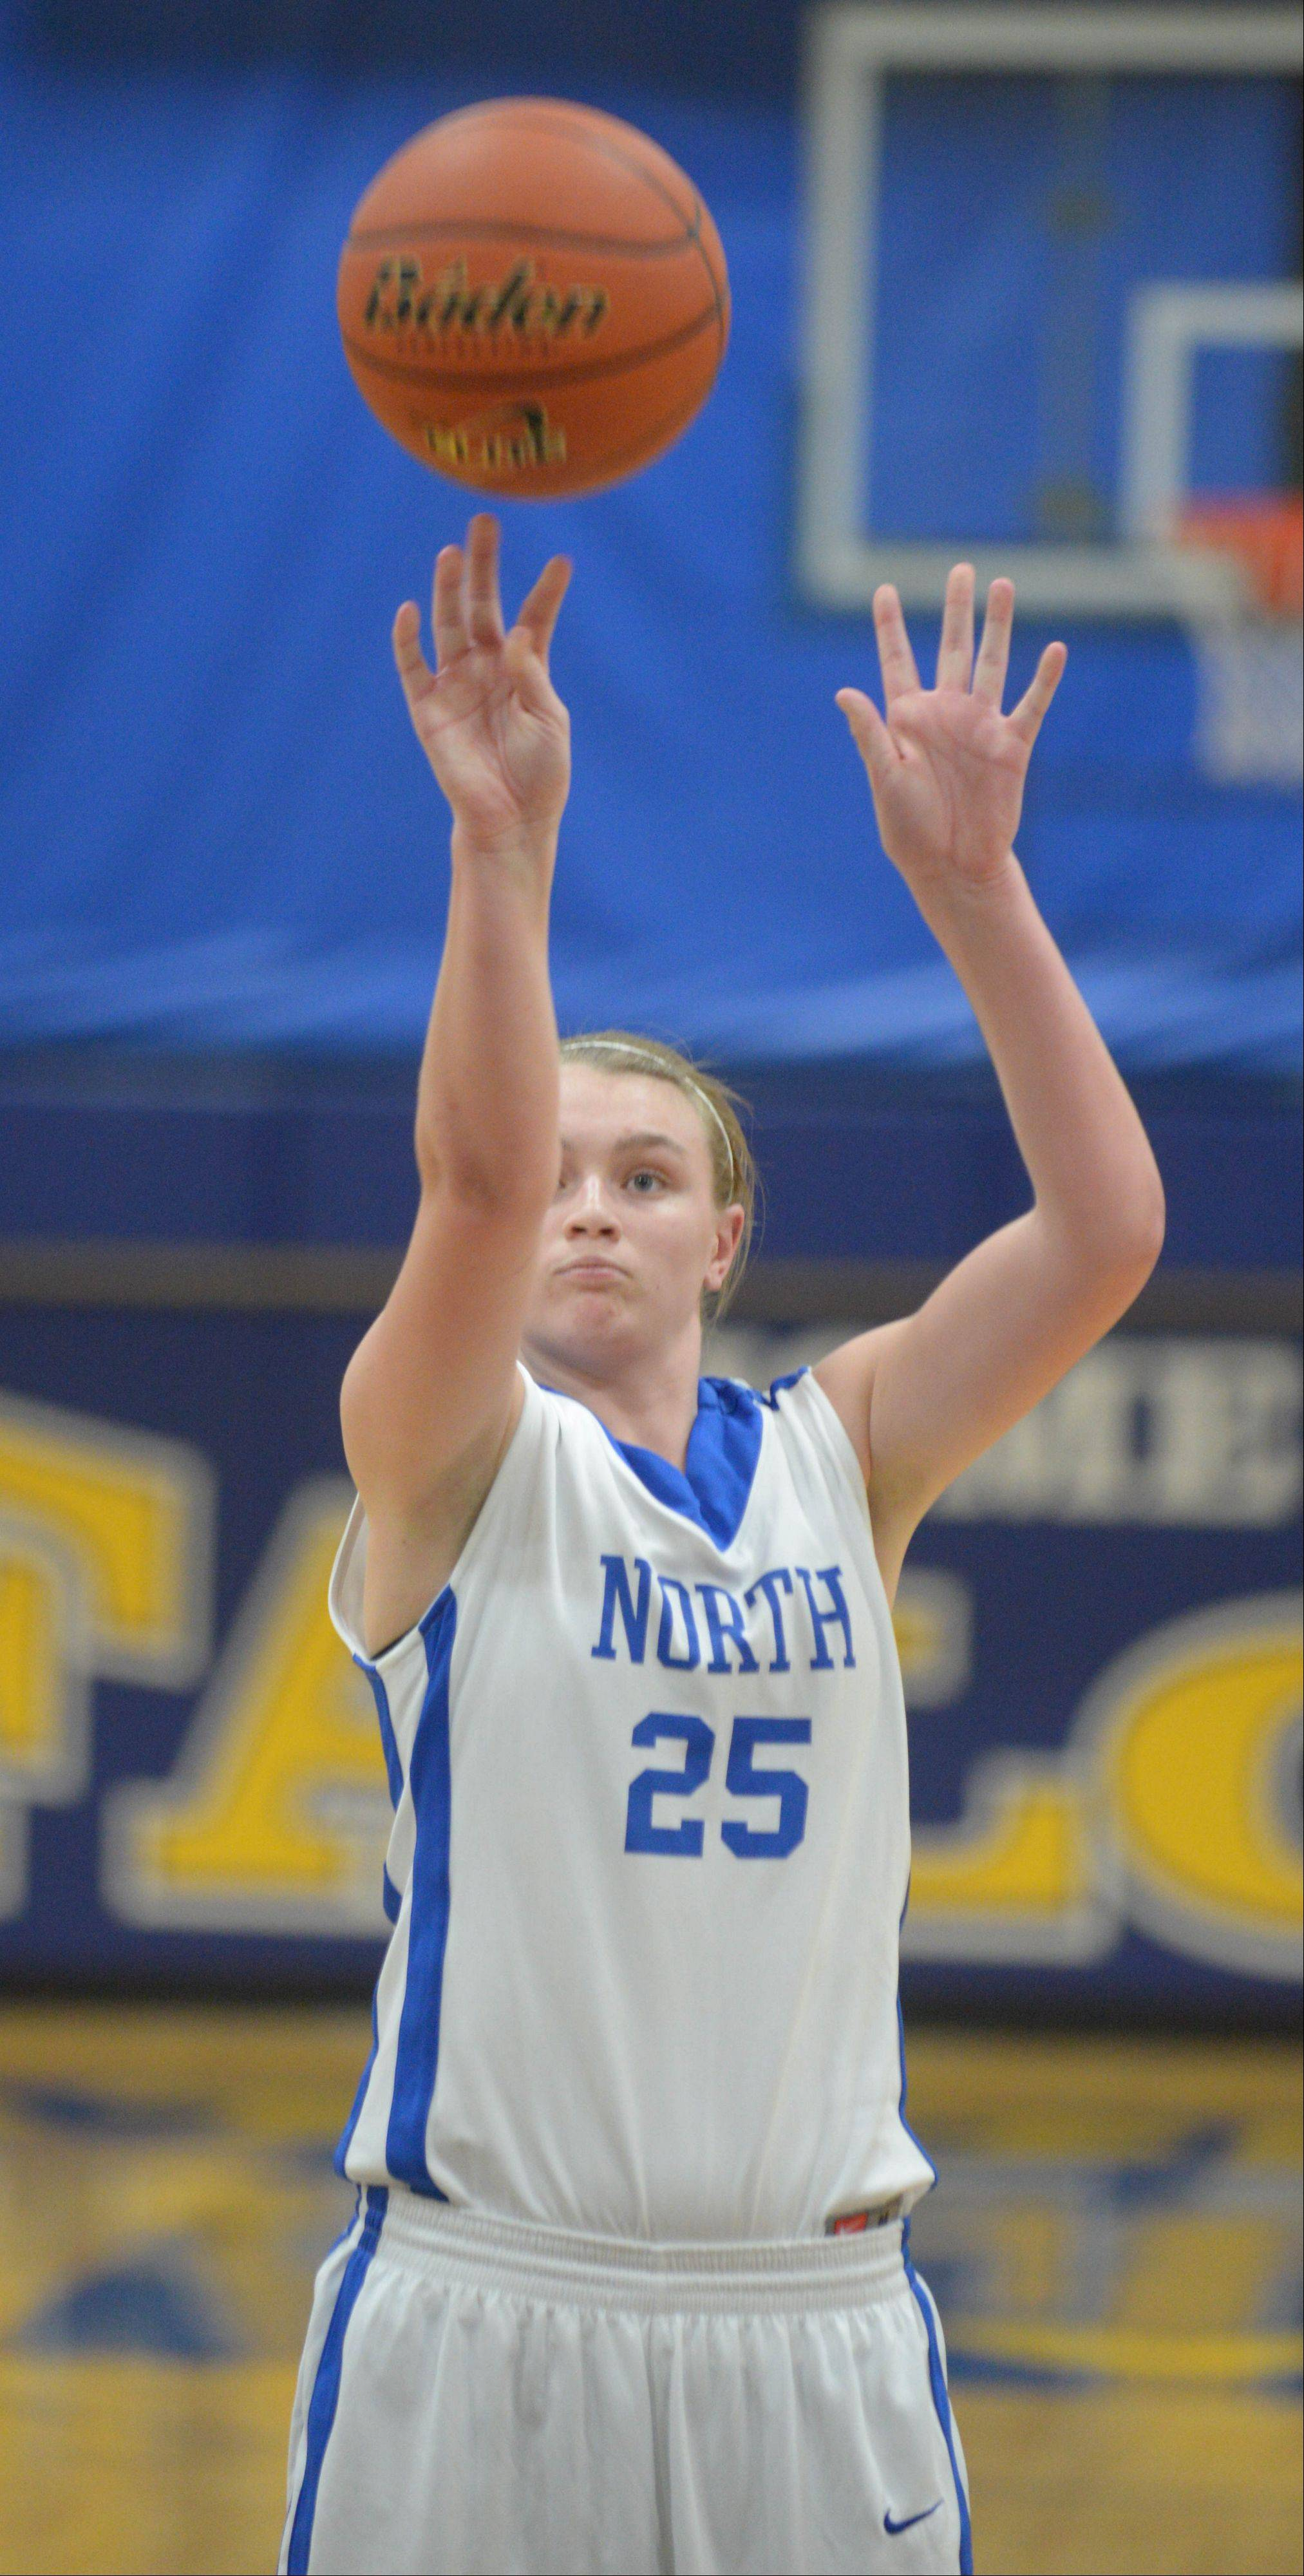 Wheaton North hosted Naperville Central Thursday night for girls basketball.